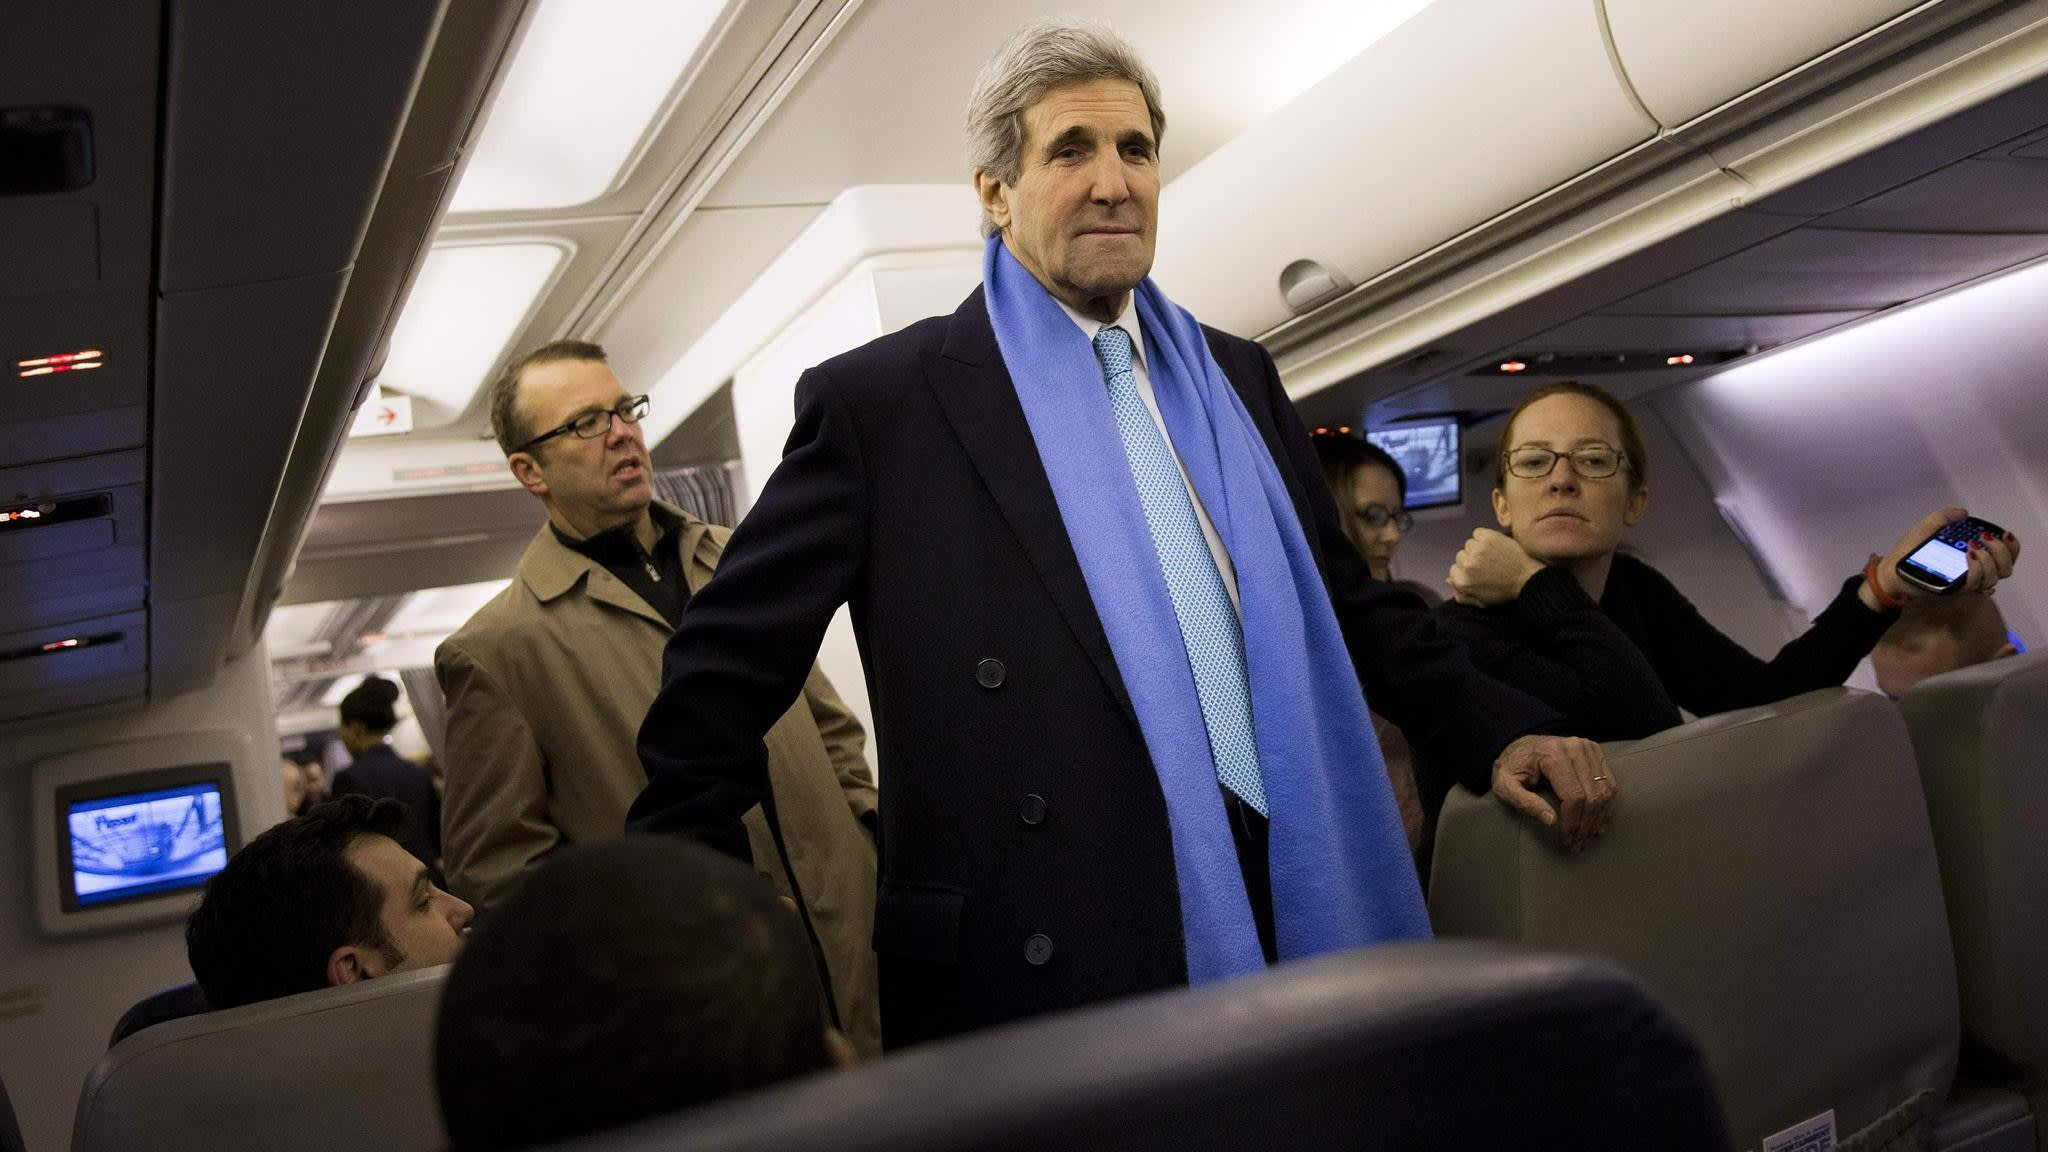 John Kerry warns on catastrophic climate change | Financial Times